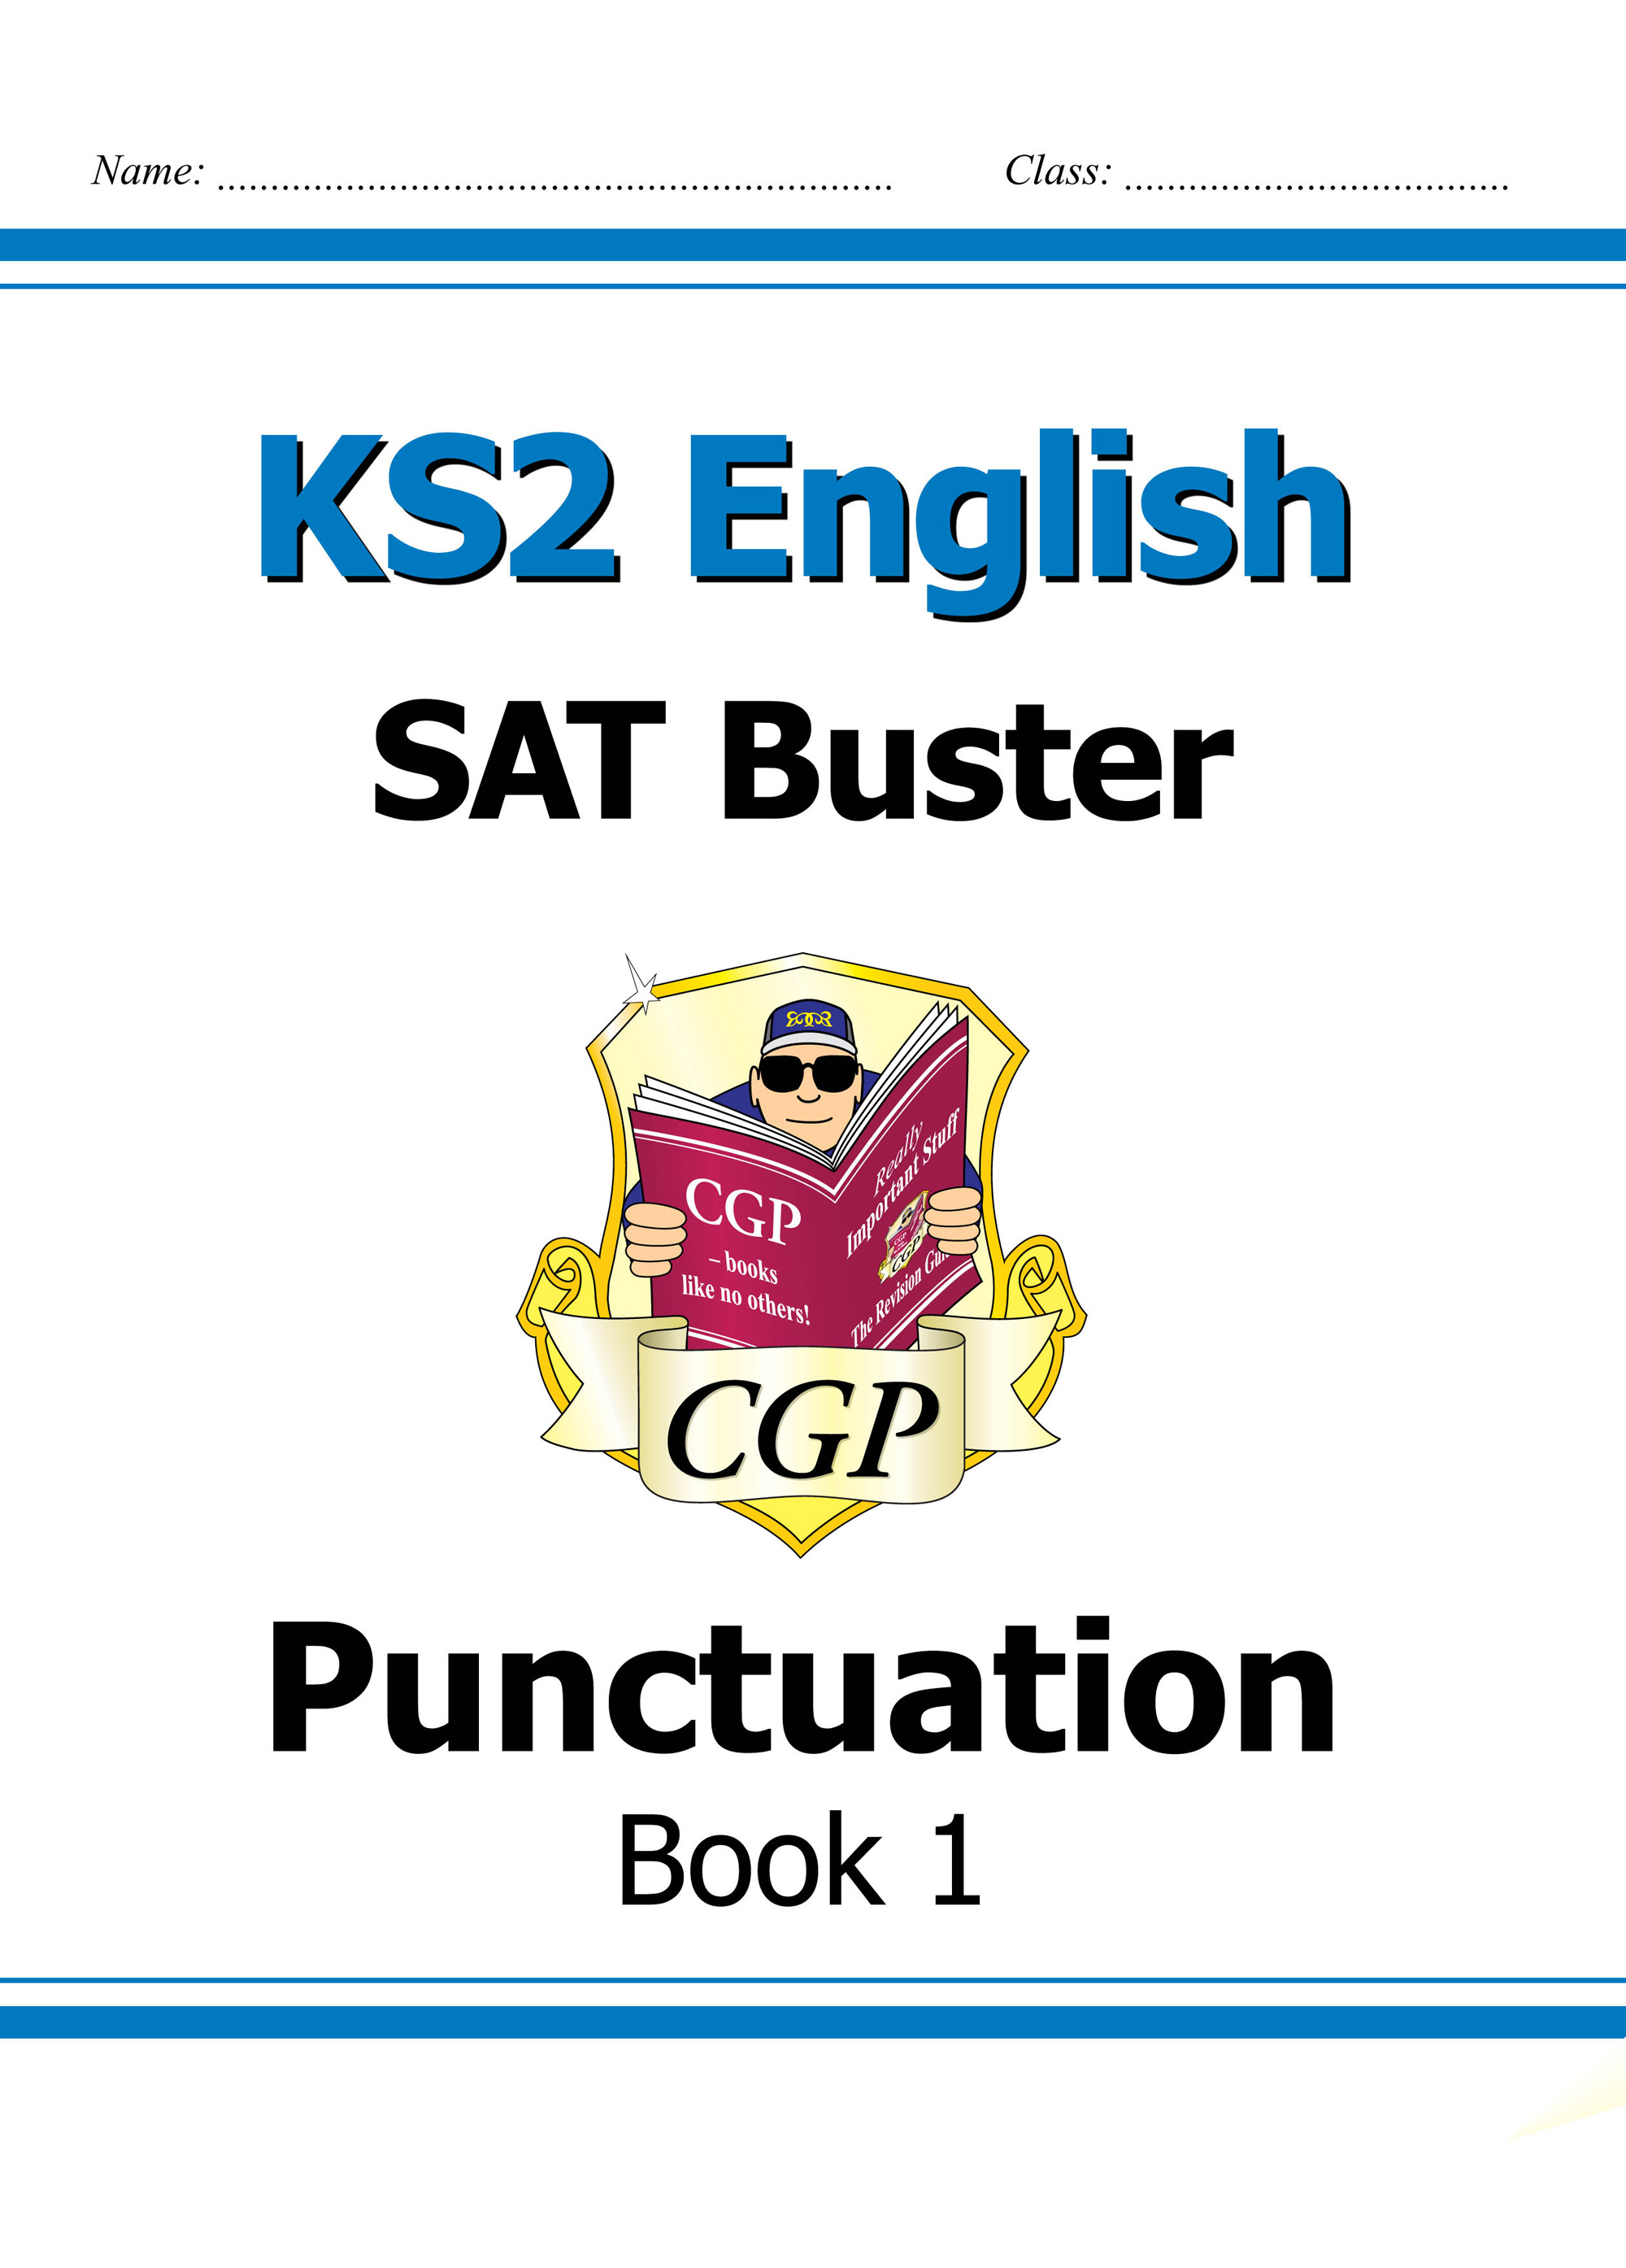 E6P23DK - KS2 English SAT Buster: Punctuation Book 1 (for tests in 2018 and beyond)